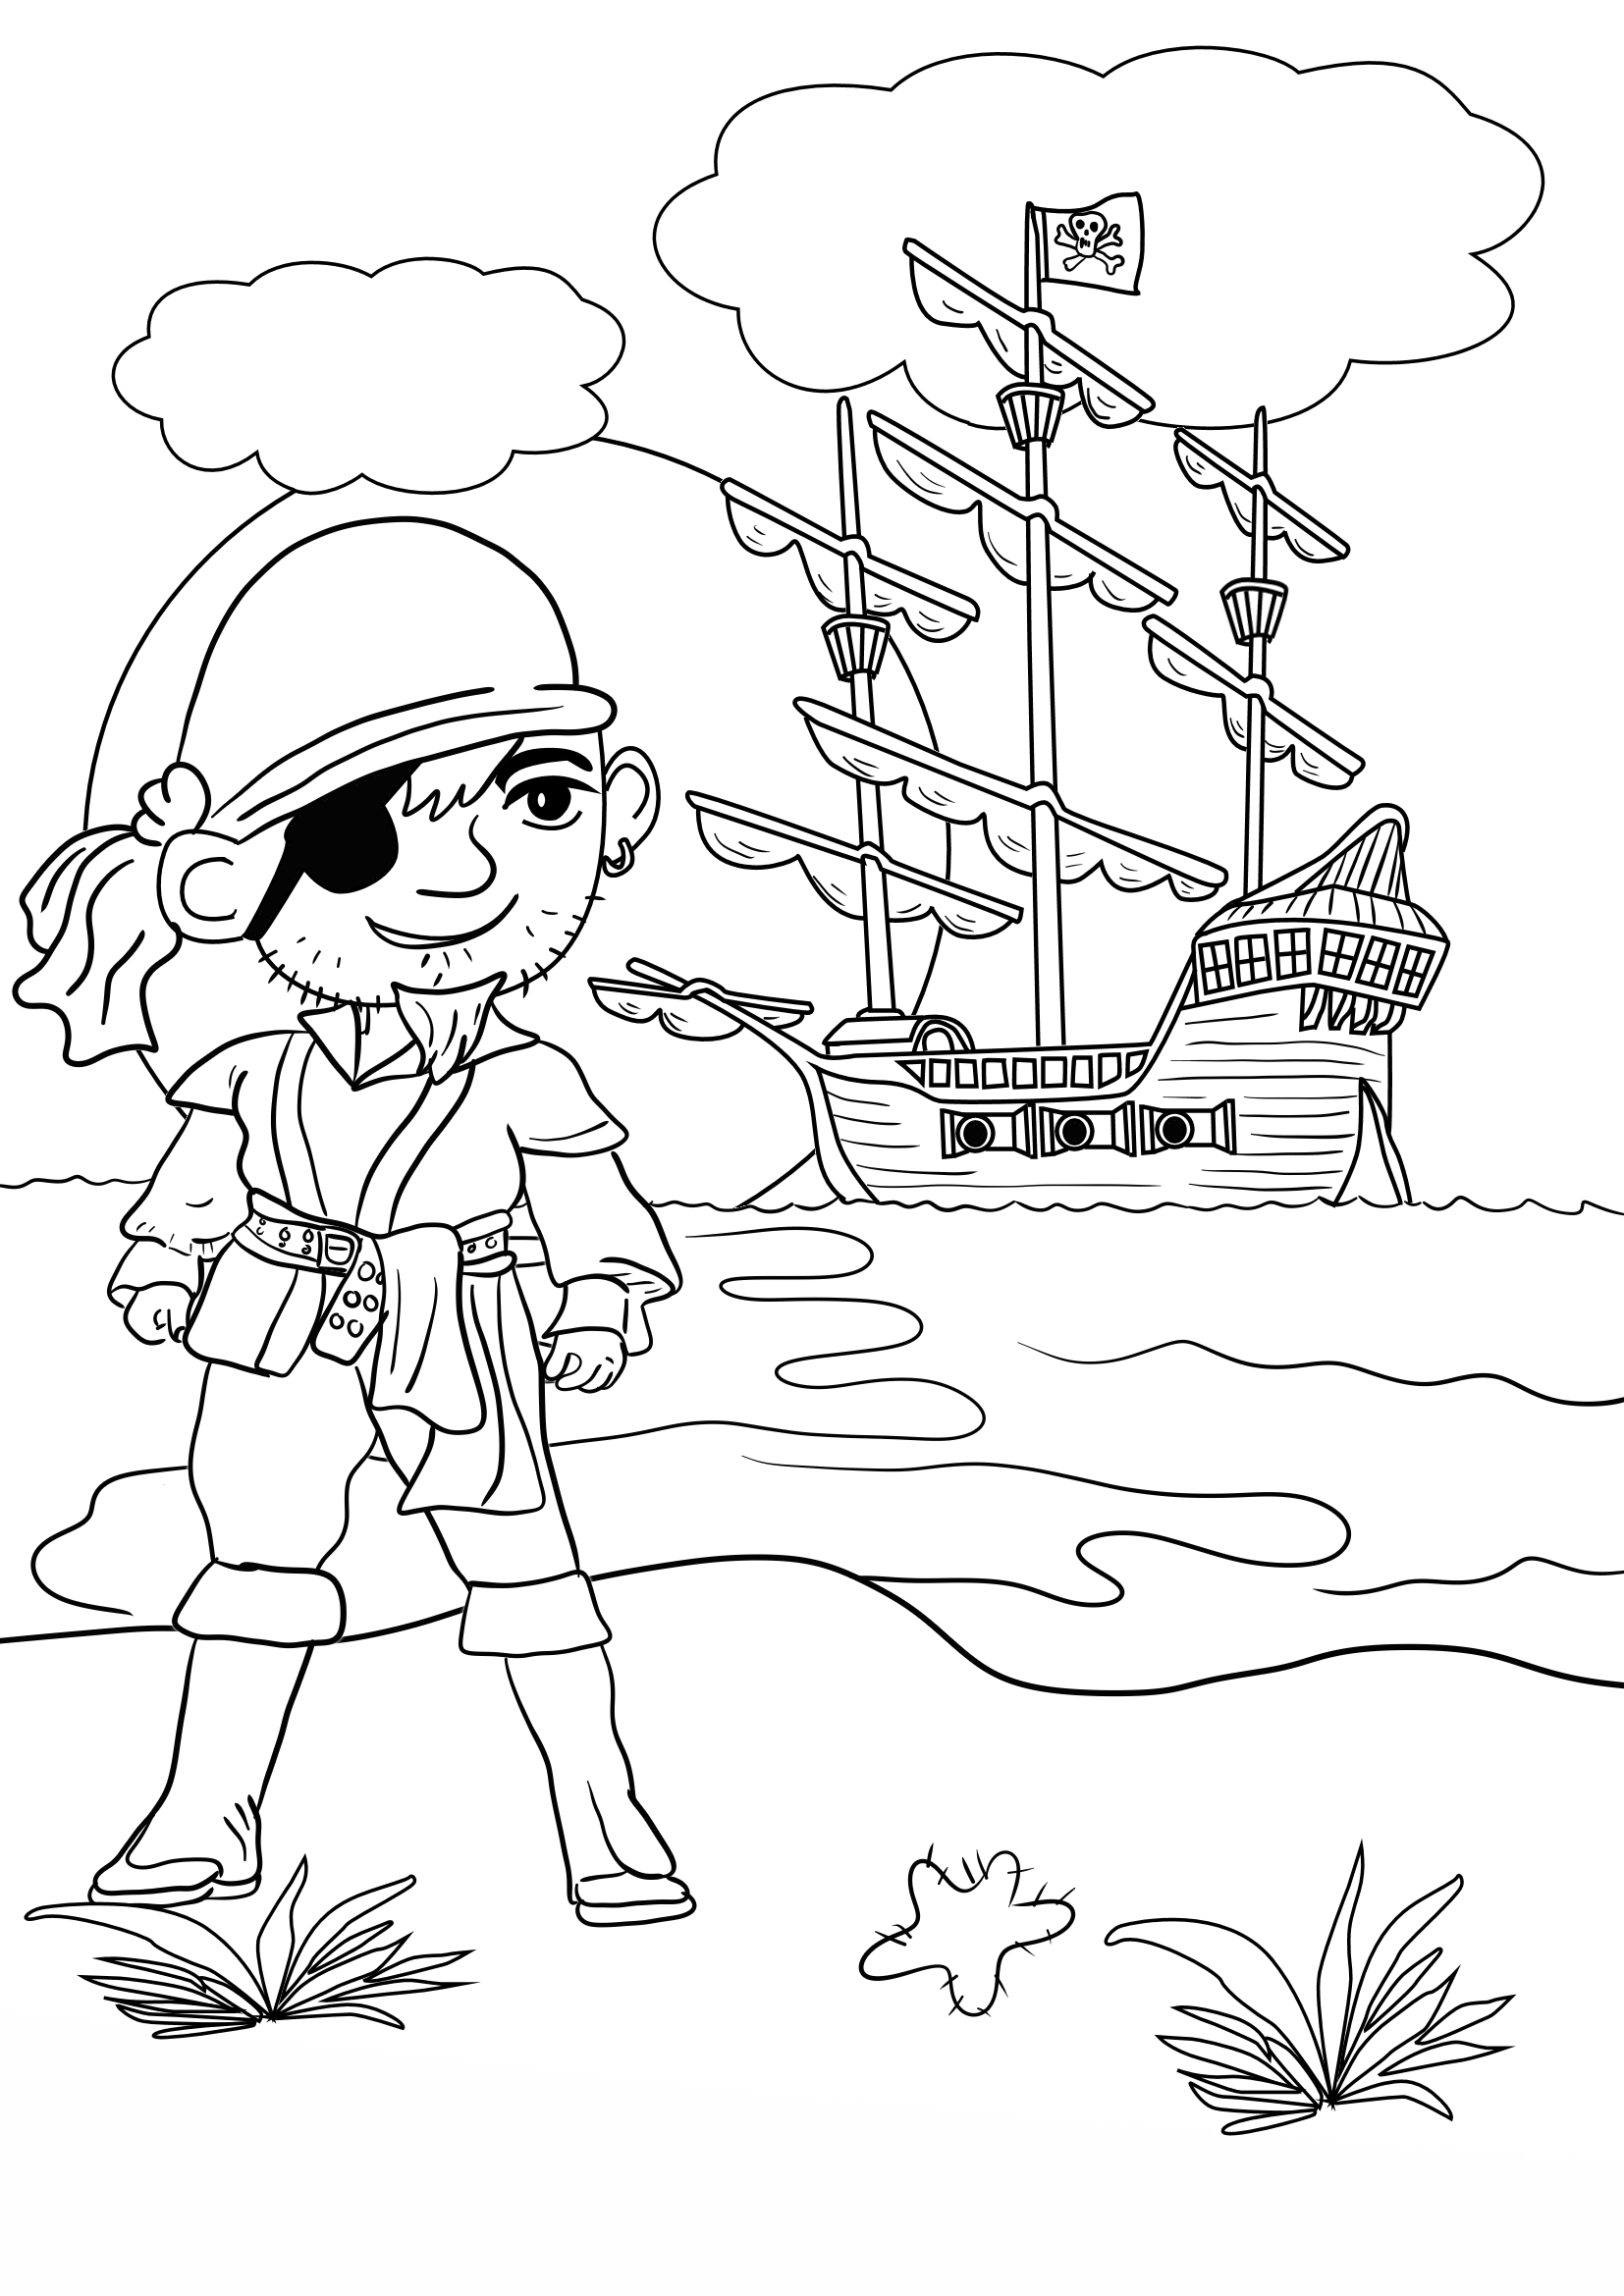 pirate colouring pages for in the playroom